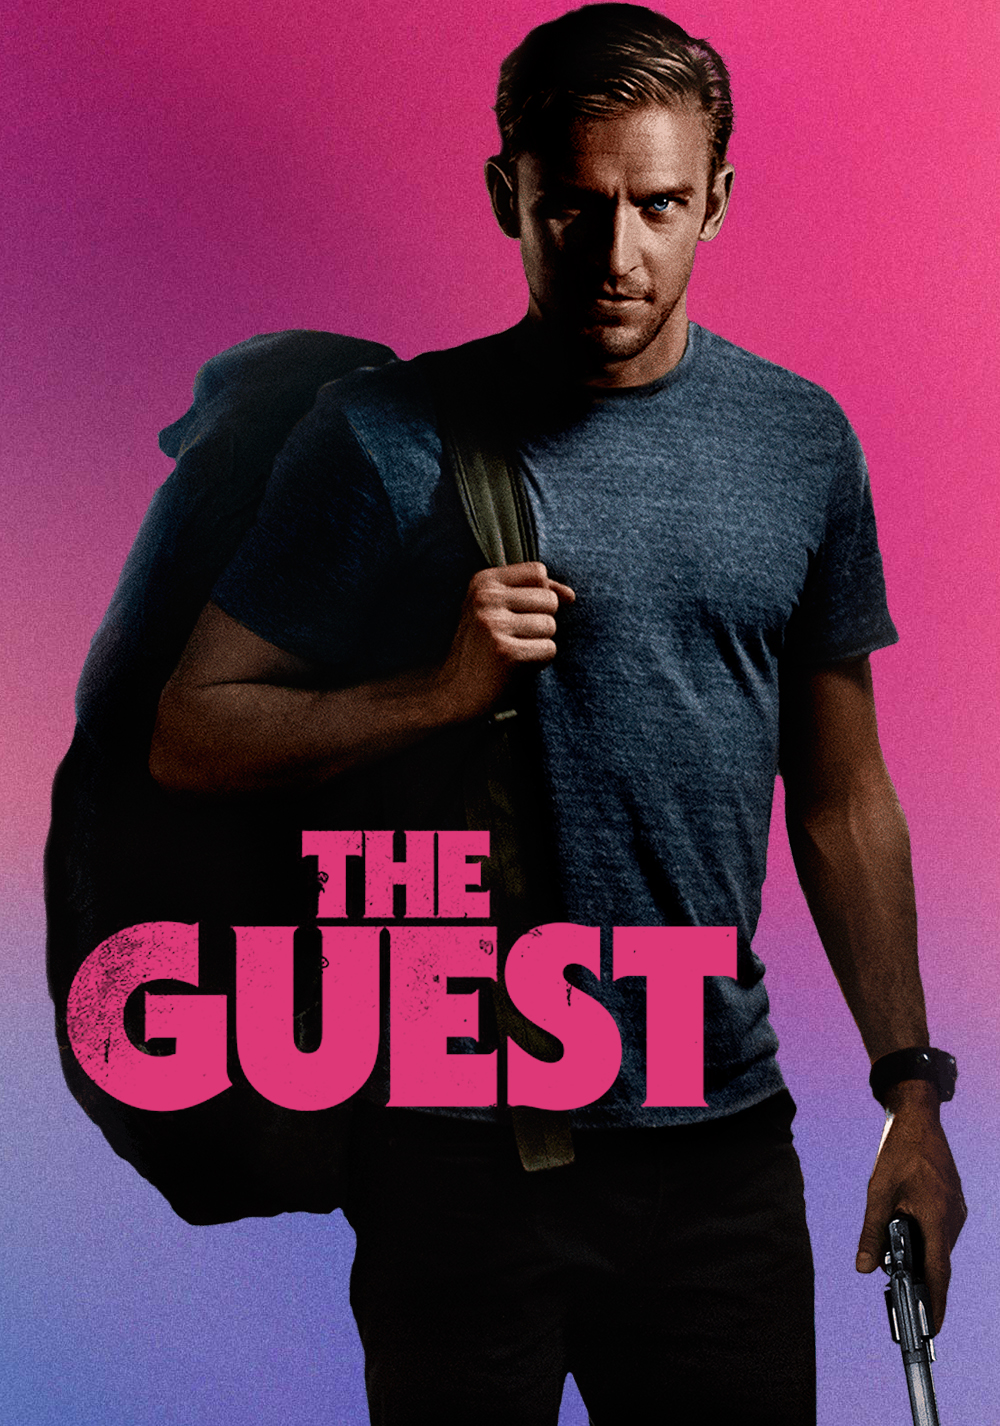 Image result for The Guest movie poster